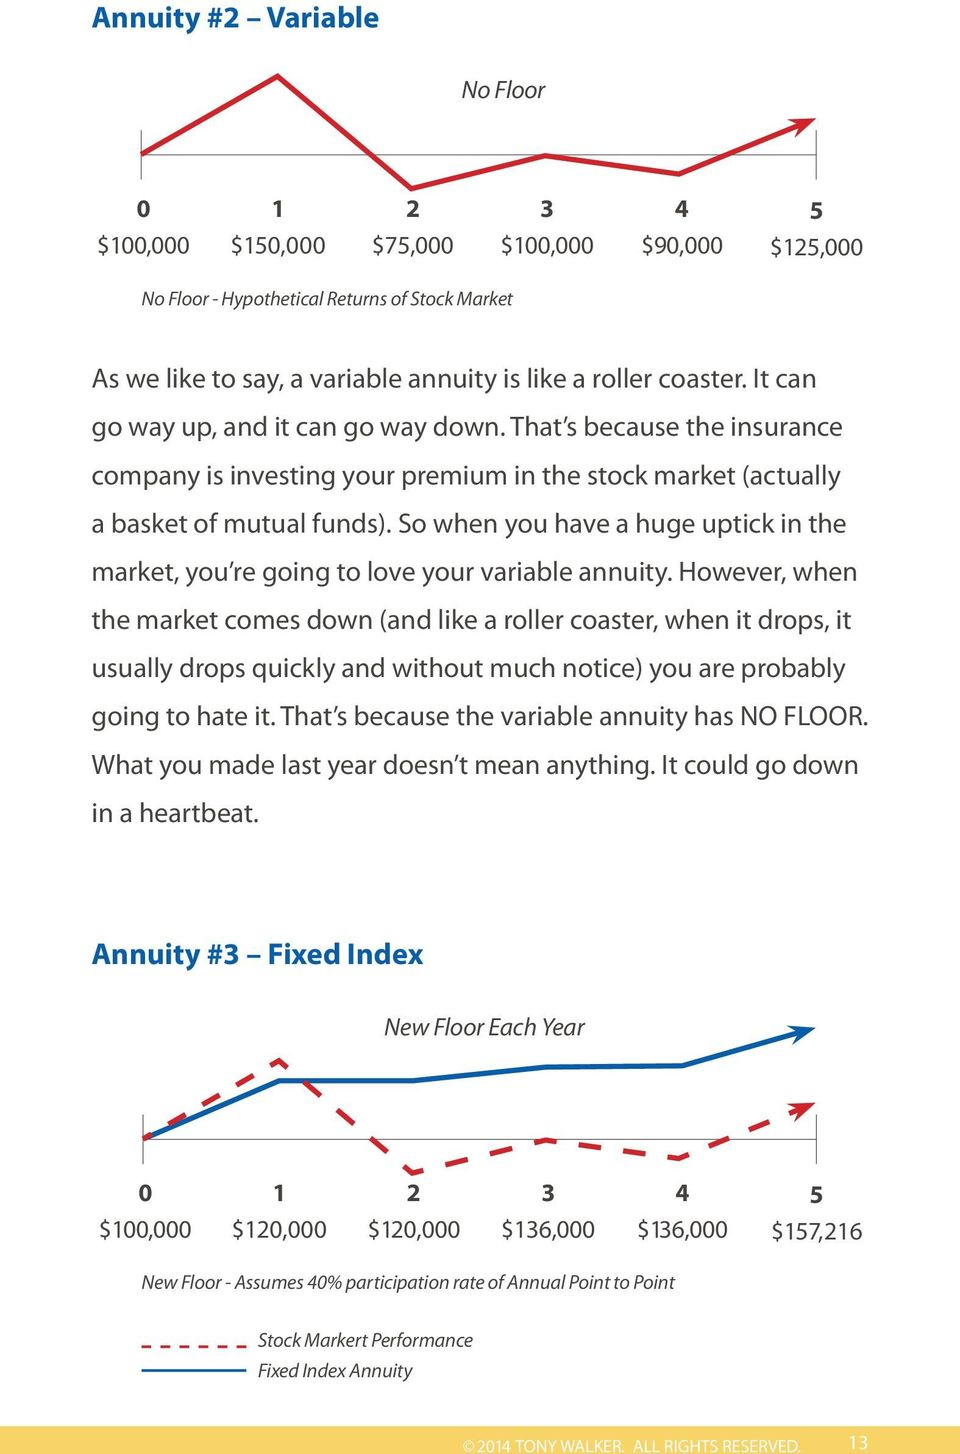 So when you have a huge uptick in the market, you re going to love your variable annuity.